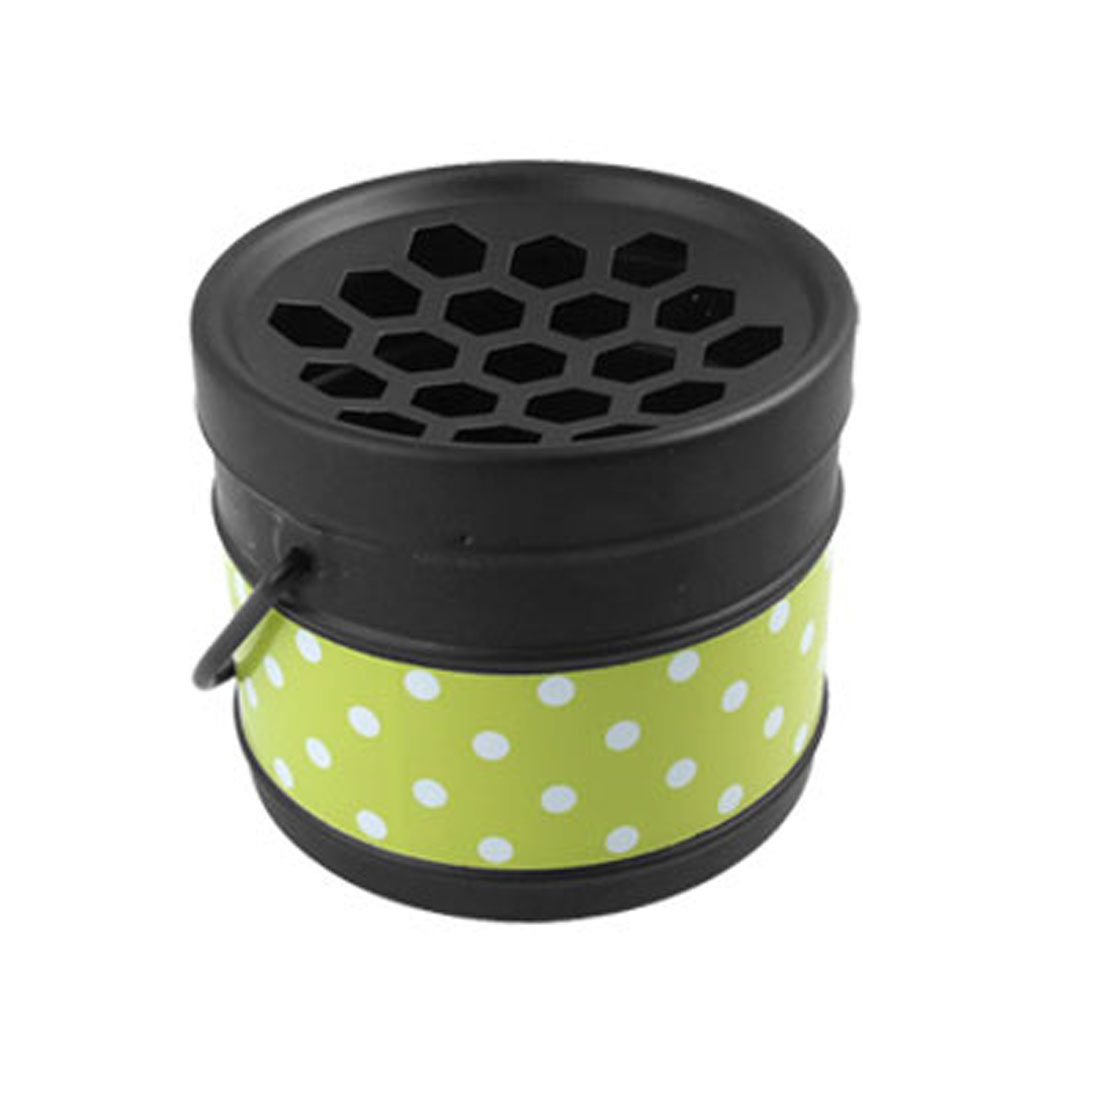 Black Green Portable Travel Dot Bucket Ashtray Desk Decor